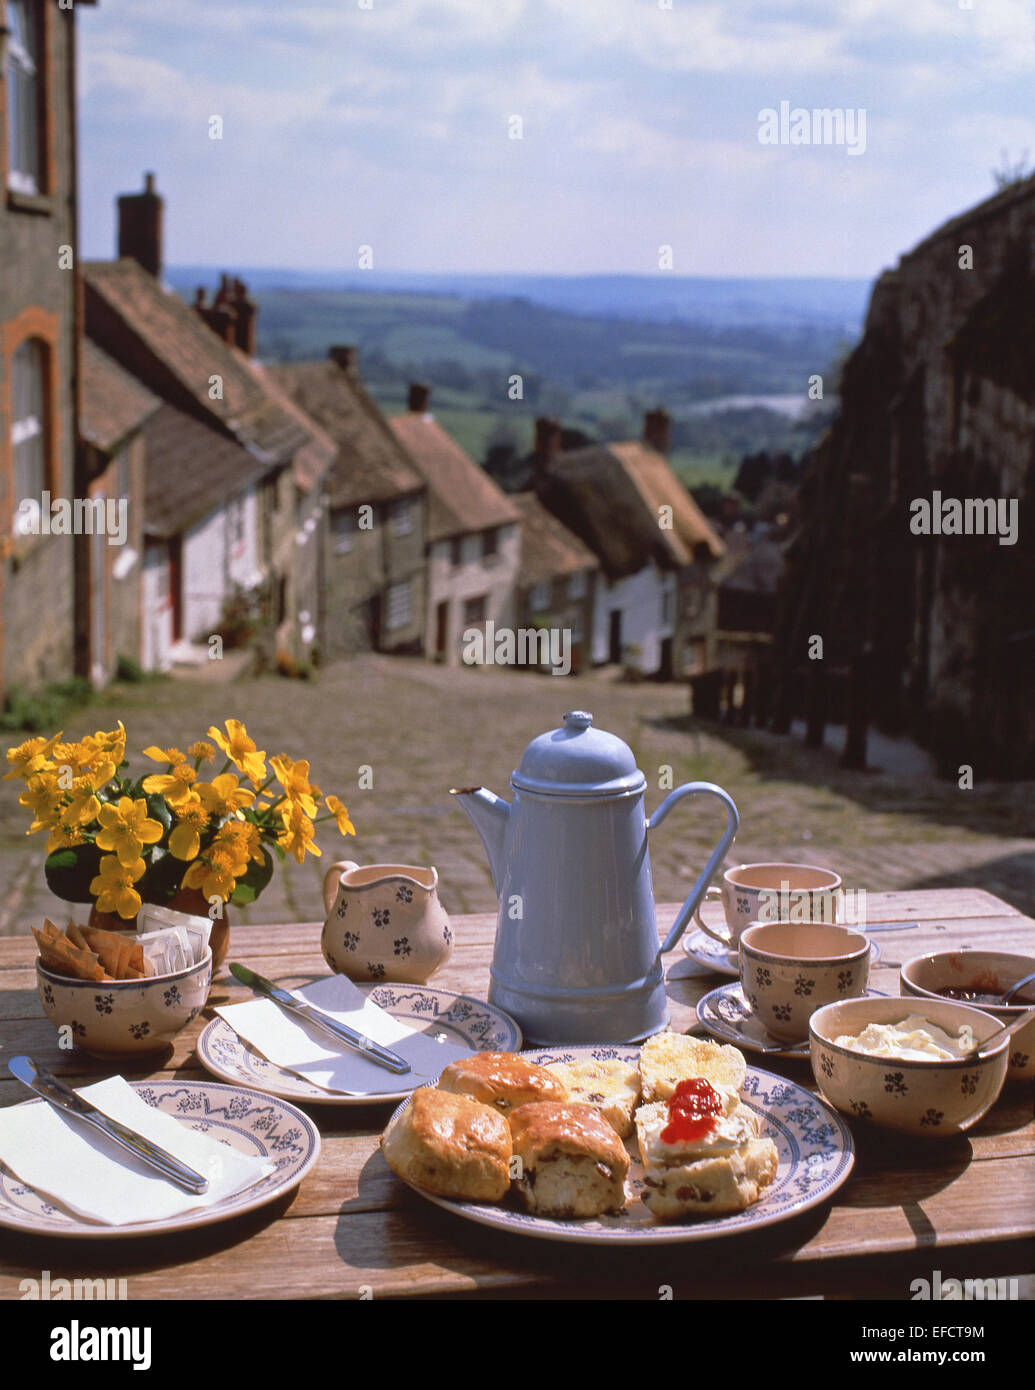 Afternoon cream tea on table at top of Gold Hill, Shaftesbury, Dorset, England, United Kingdom Stock Photo